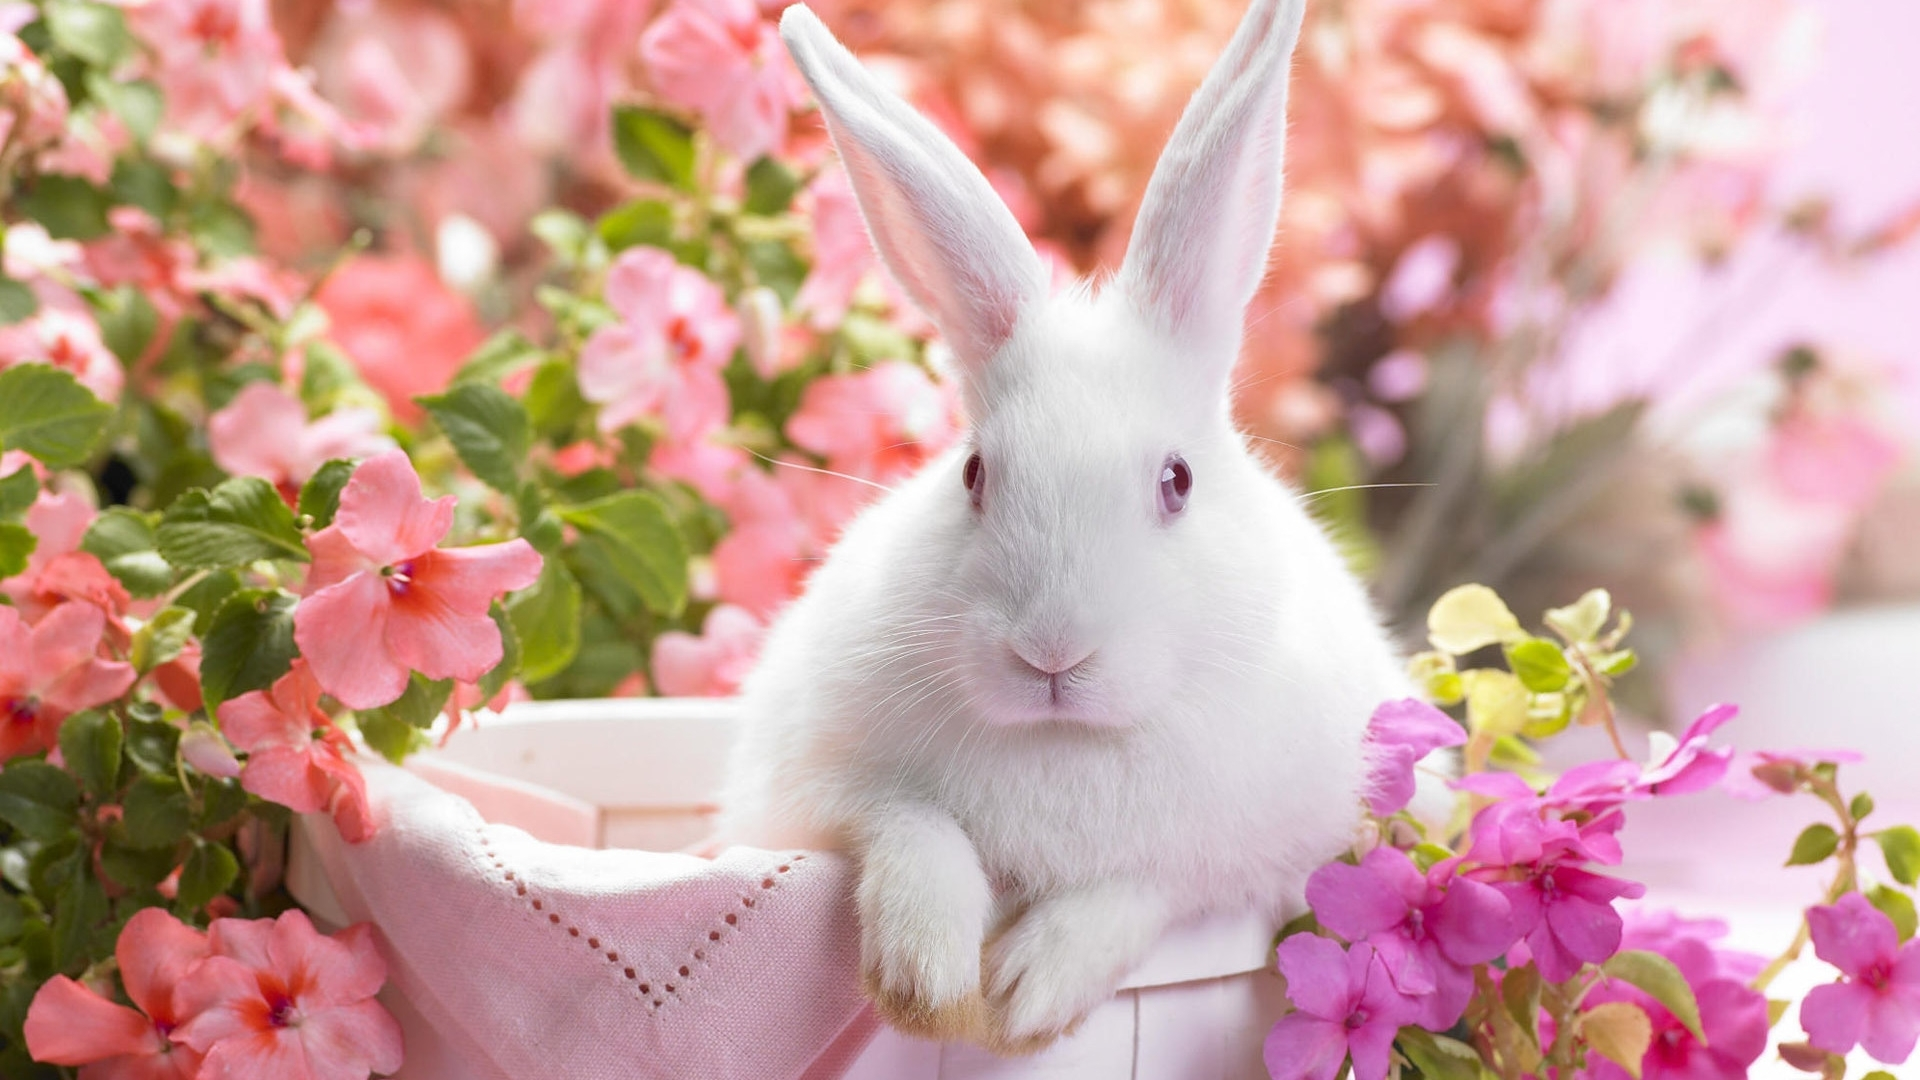 46003 download wallpaper Animals, Rabbits screensavers and pictures for free